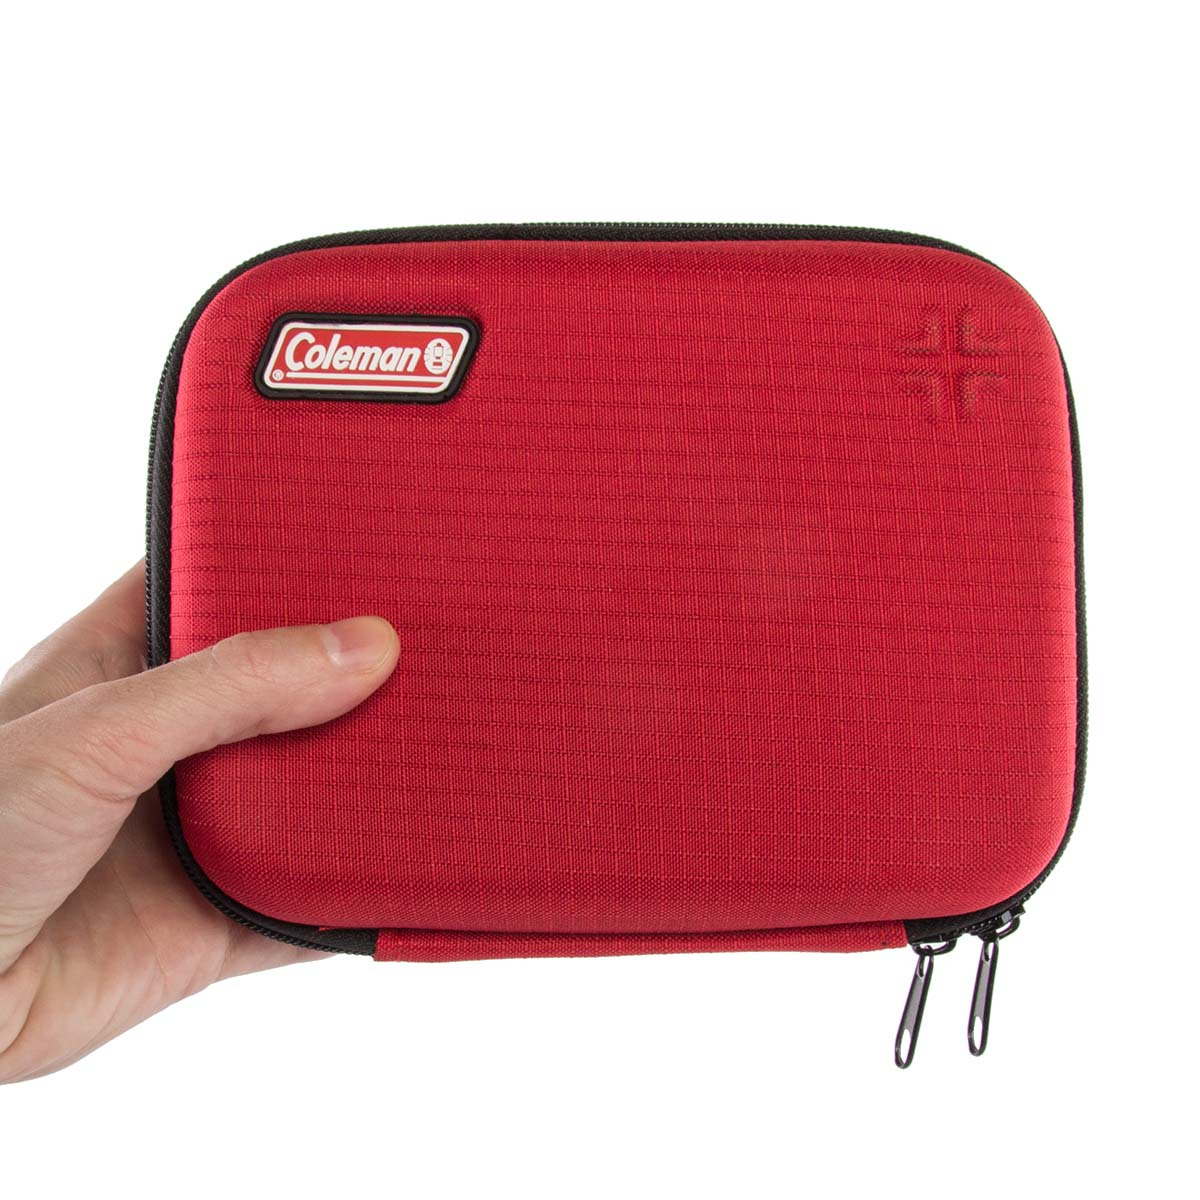 Click here to buy Coleman (78 Piece) First Aid Kit Emergency Supplies Pack, Zip Small Travel Size Case For Car, Home Or Camping Safety, for Sports, Camping,....